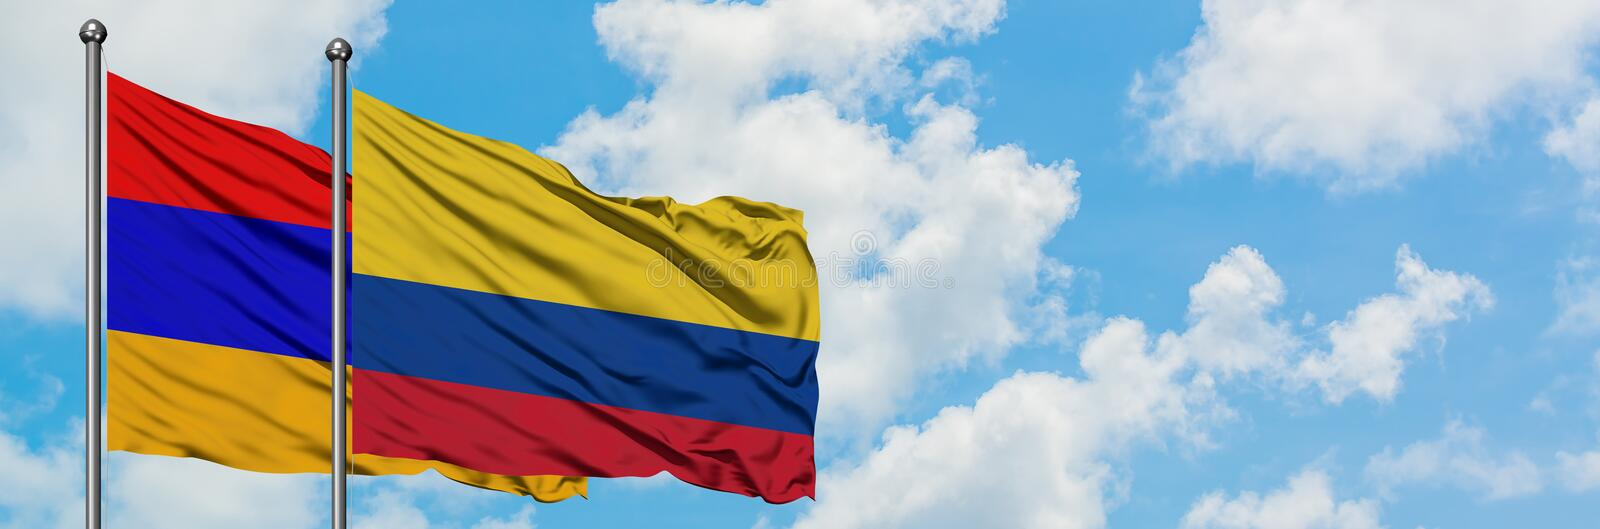 Armenia and Colombia flag waving in the wind against white cloudy blue sky together. Diplomacy concept, international relations. Peace, agreement, anthem stock image